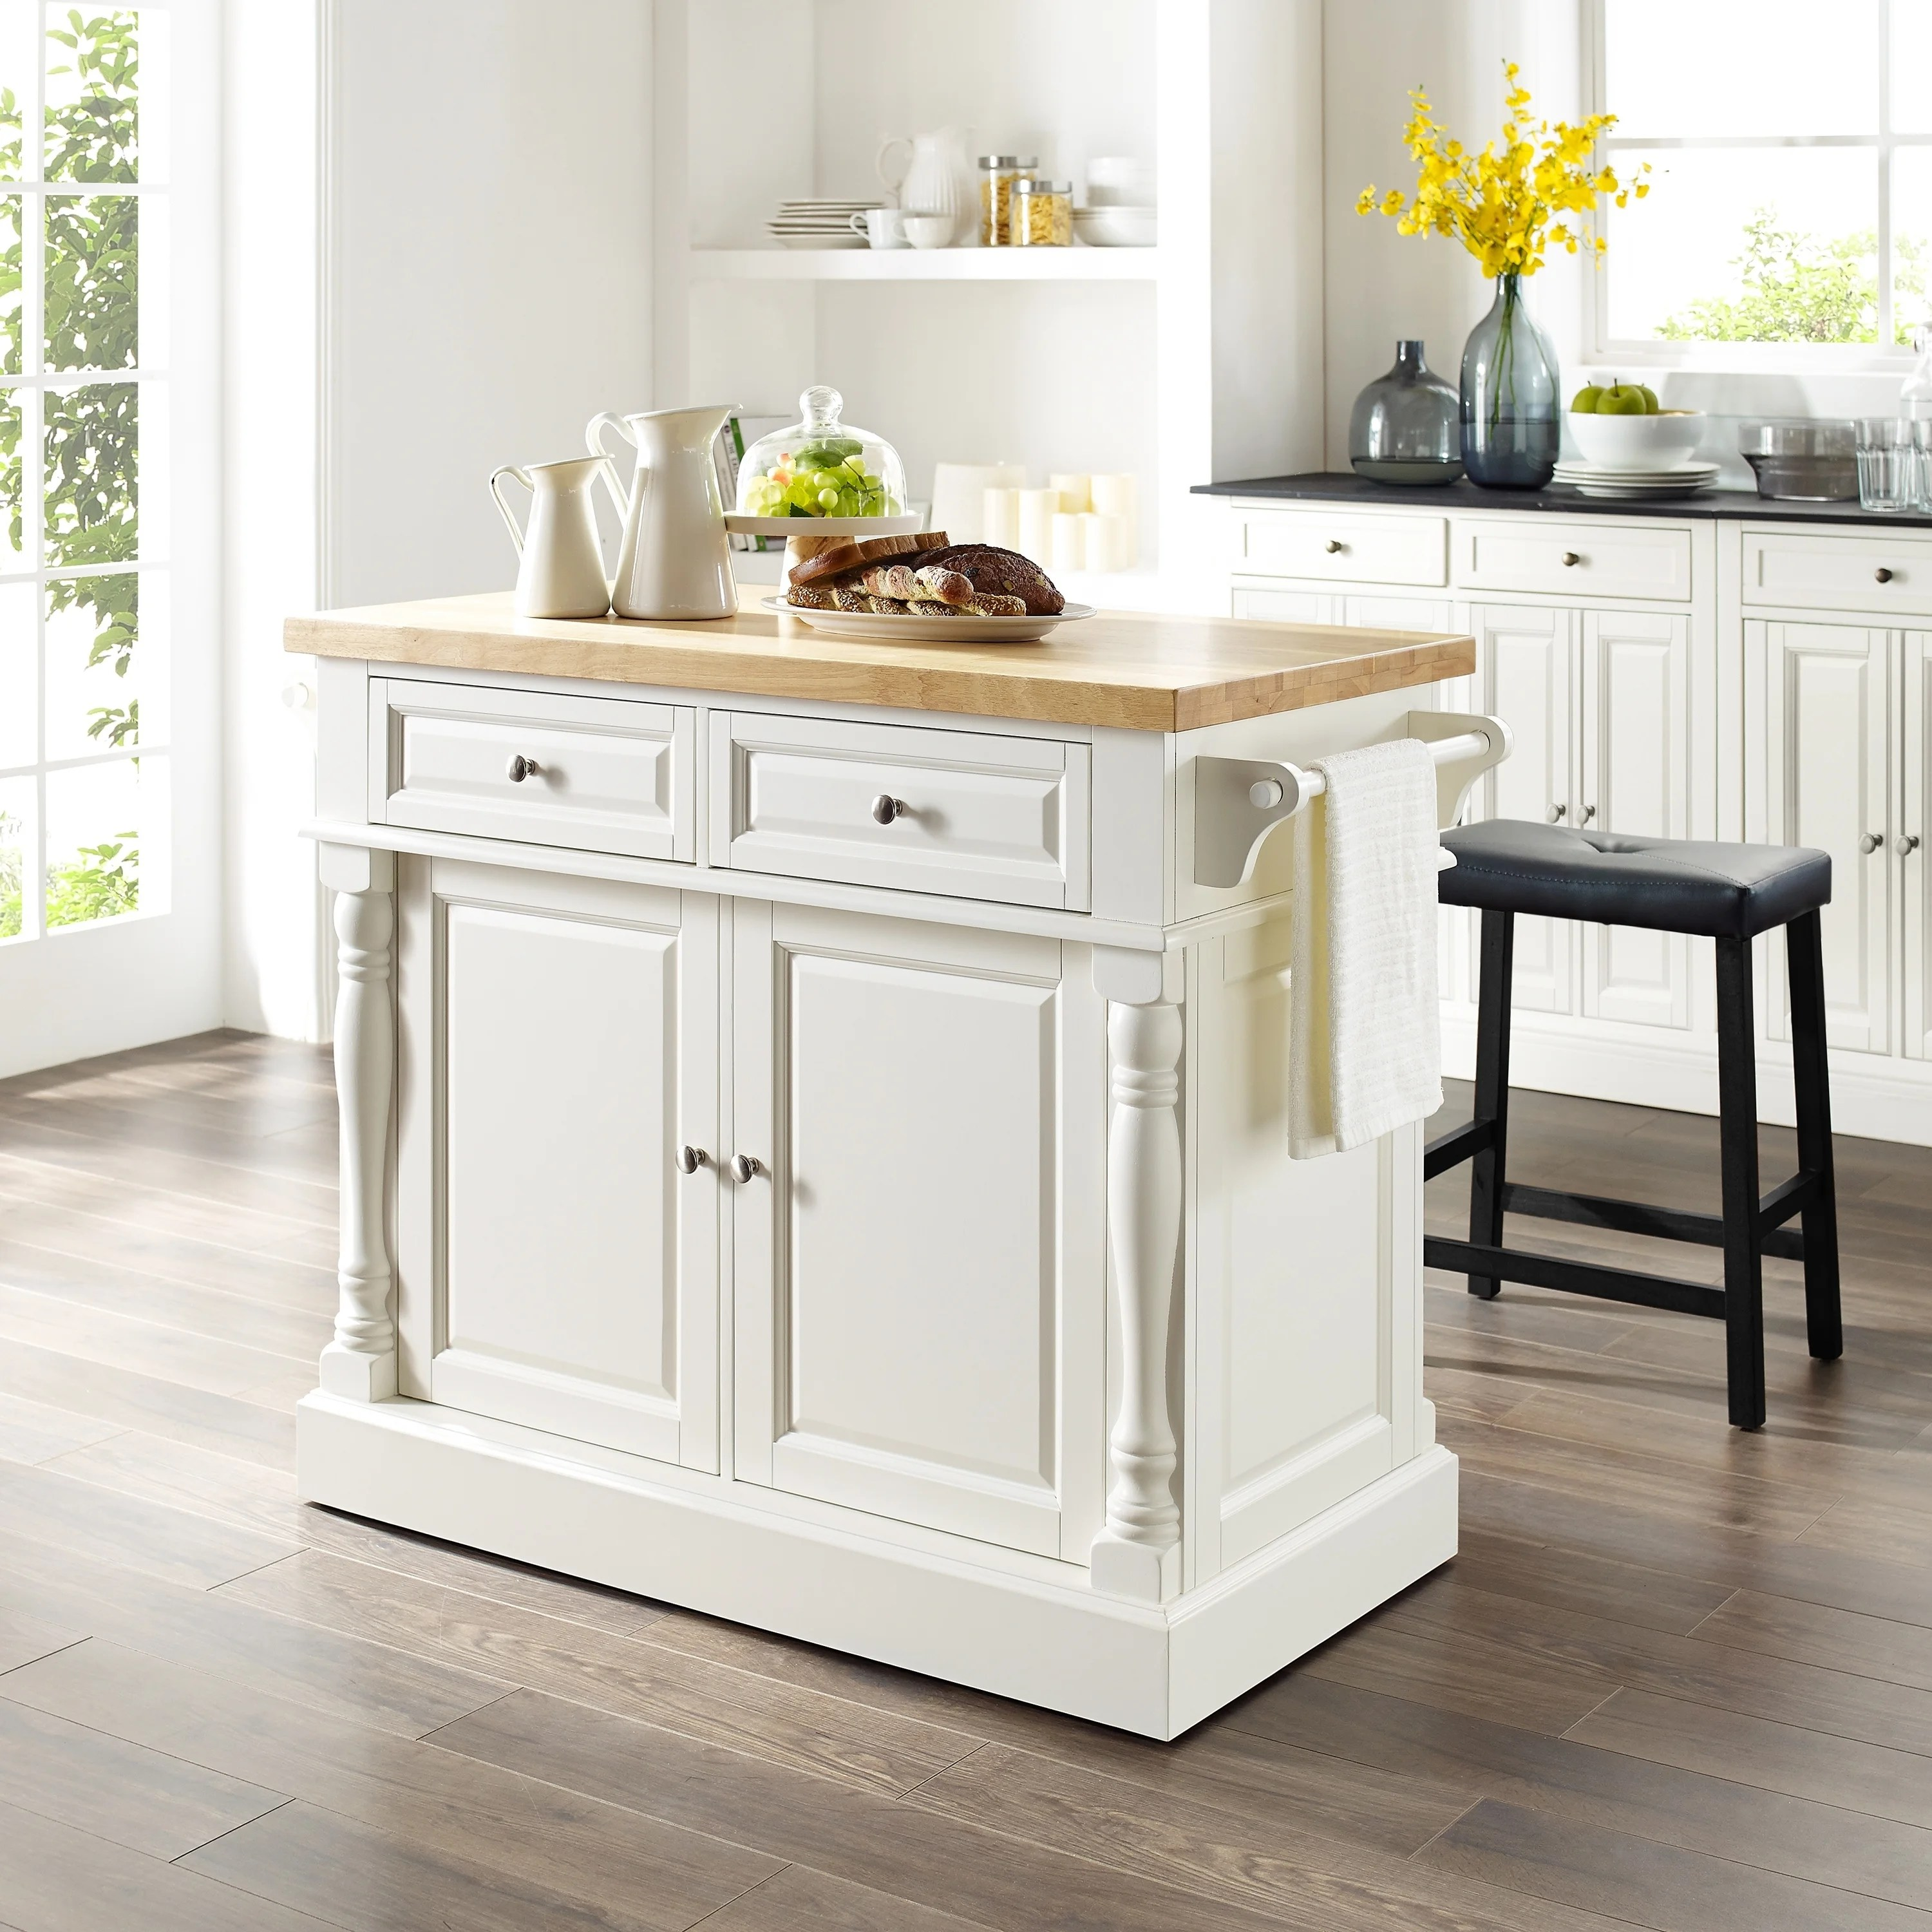 Copper Grove Kalesar Butcher Block Top White Kitchen Island With 24 Inch Black Upholstered Saddle Stools Overstock 20931614